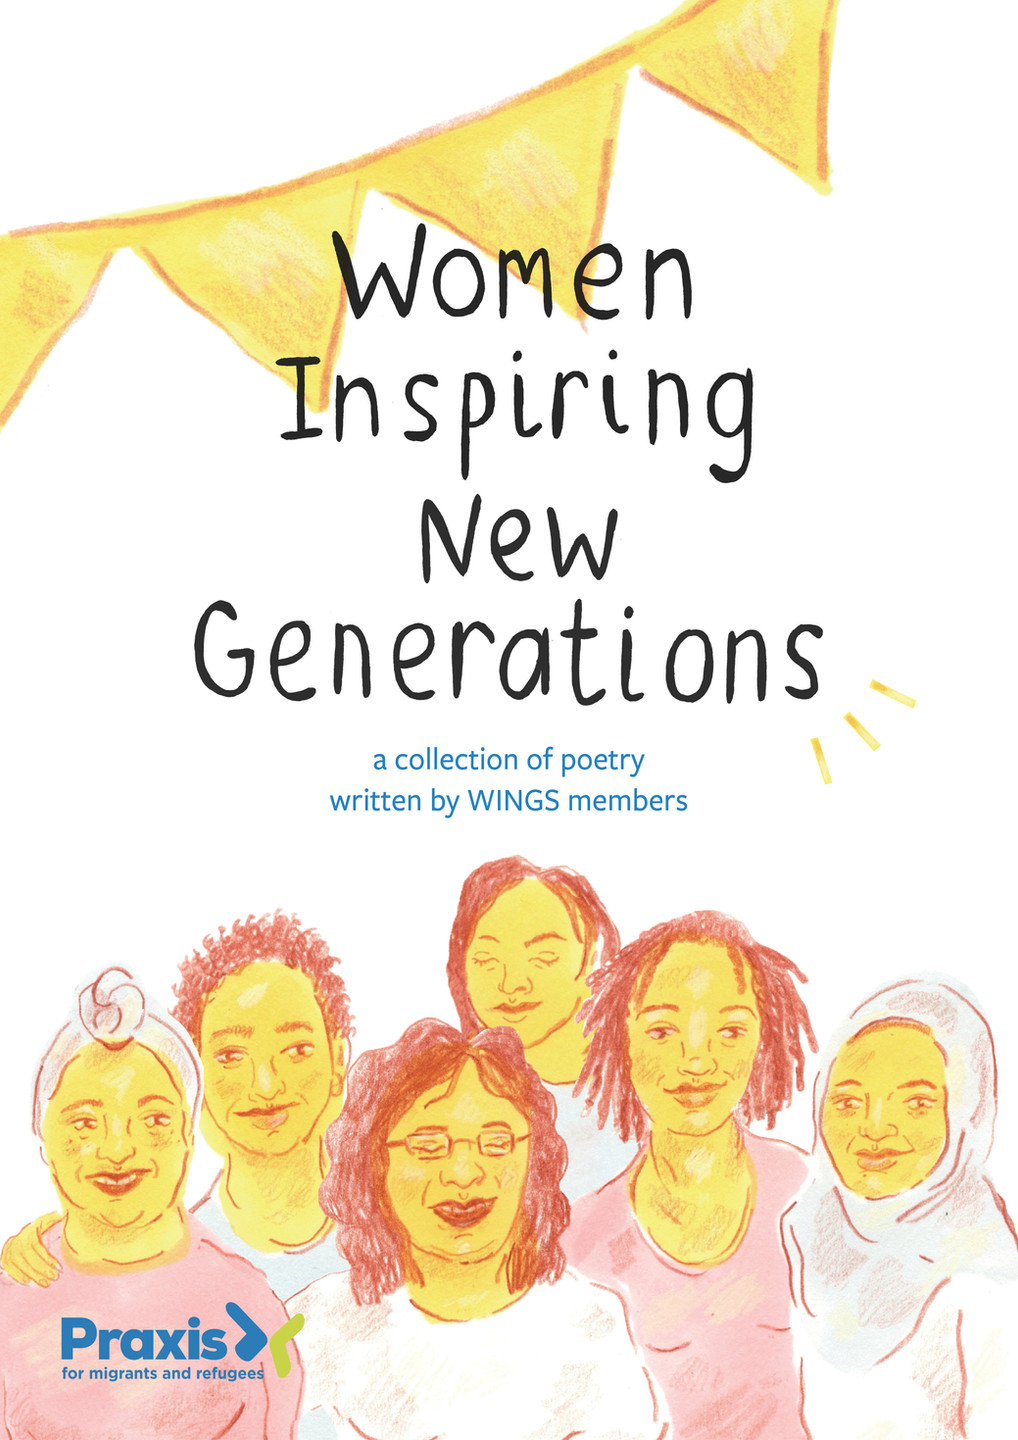 Women Inspiring New Generations, a collection of poetry written by WINGS members